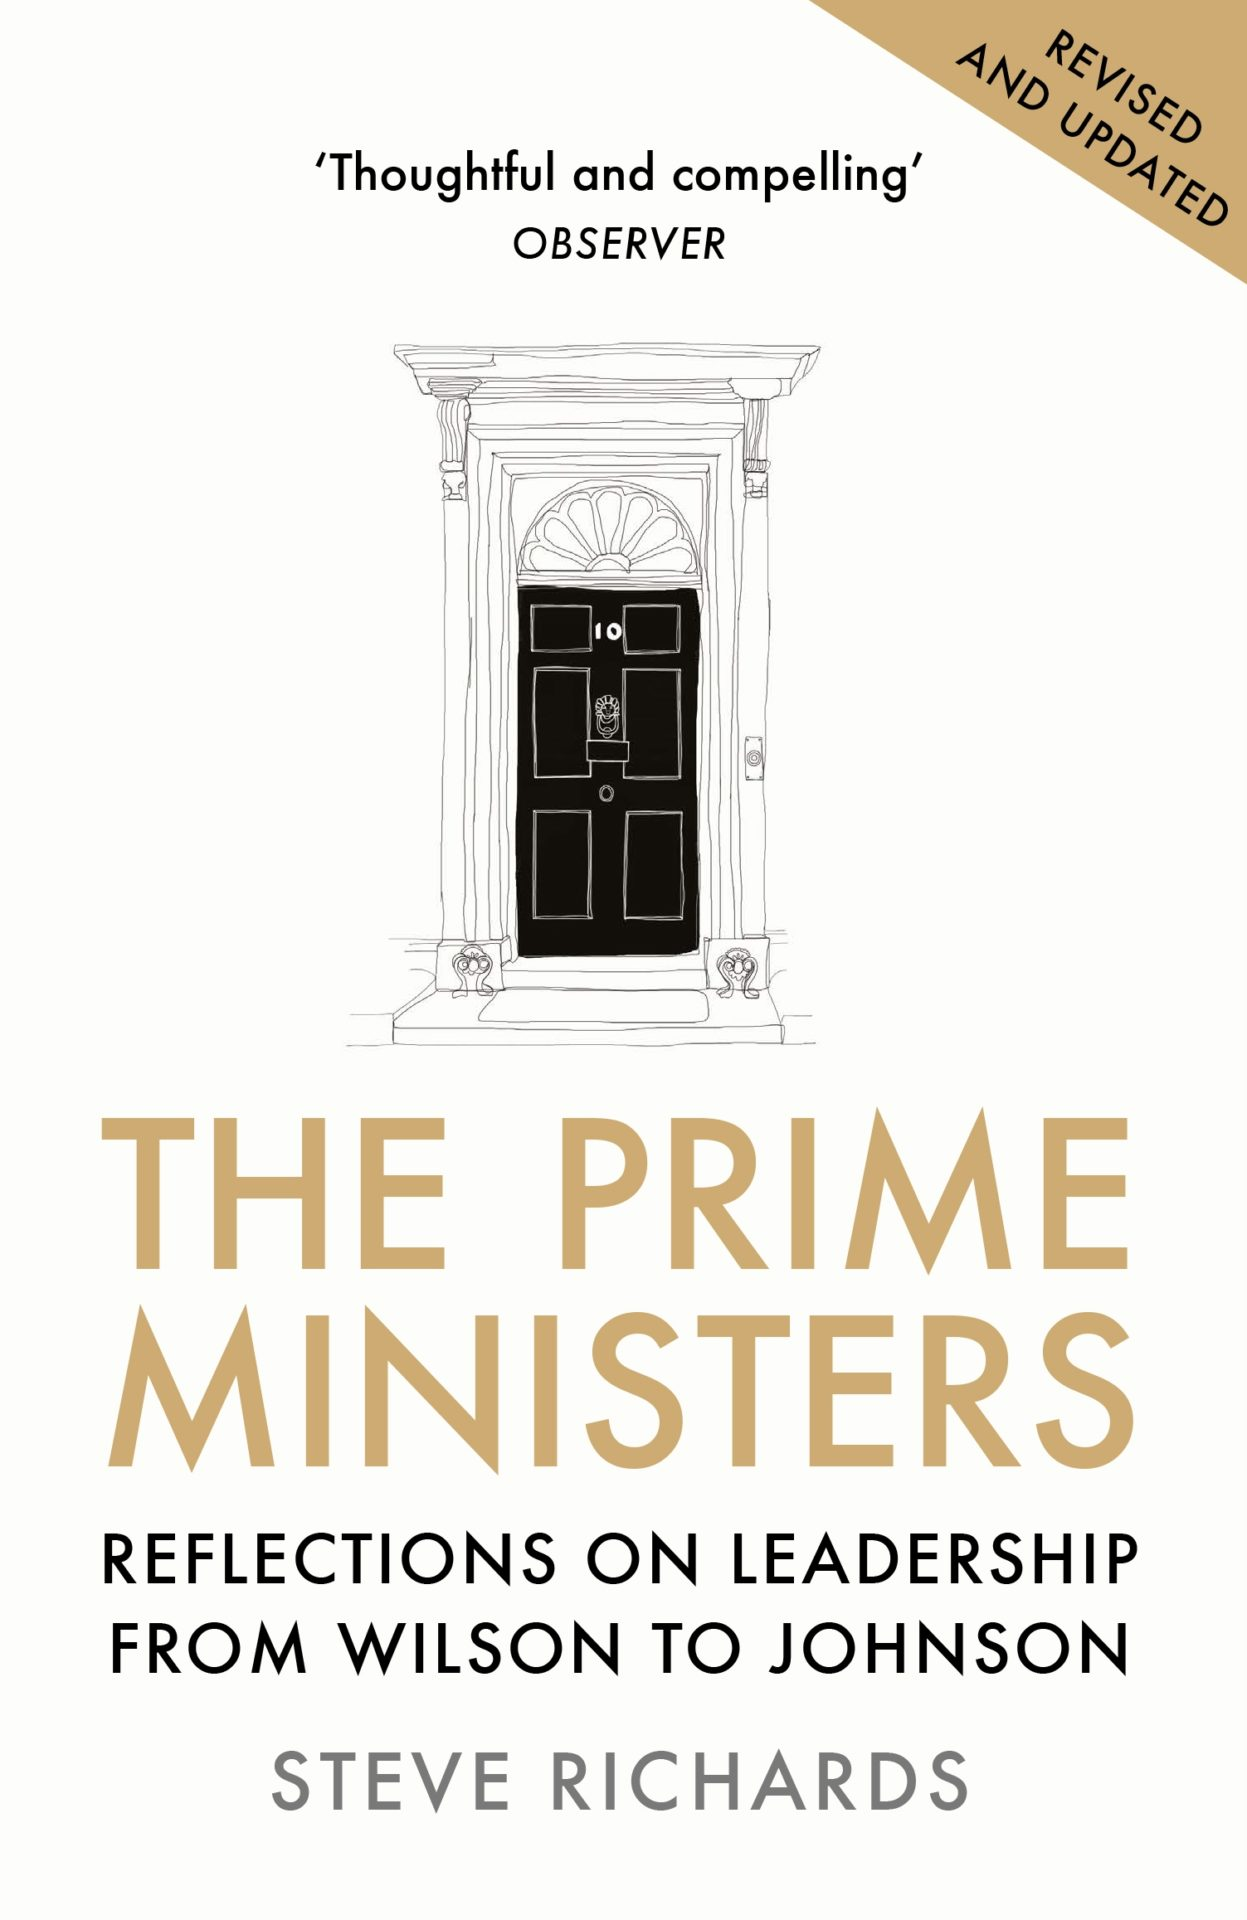 The Prime Ministers: Reflections on Leadership from Wilson to Johnson by Steve Richards